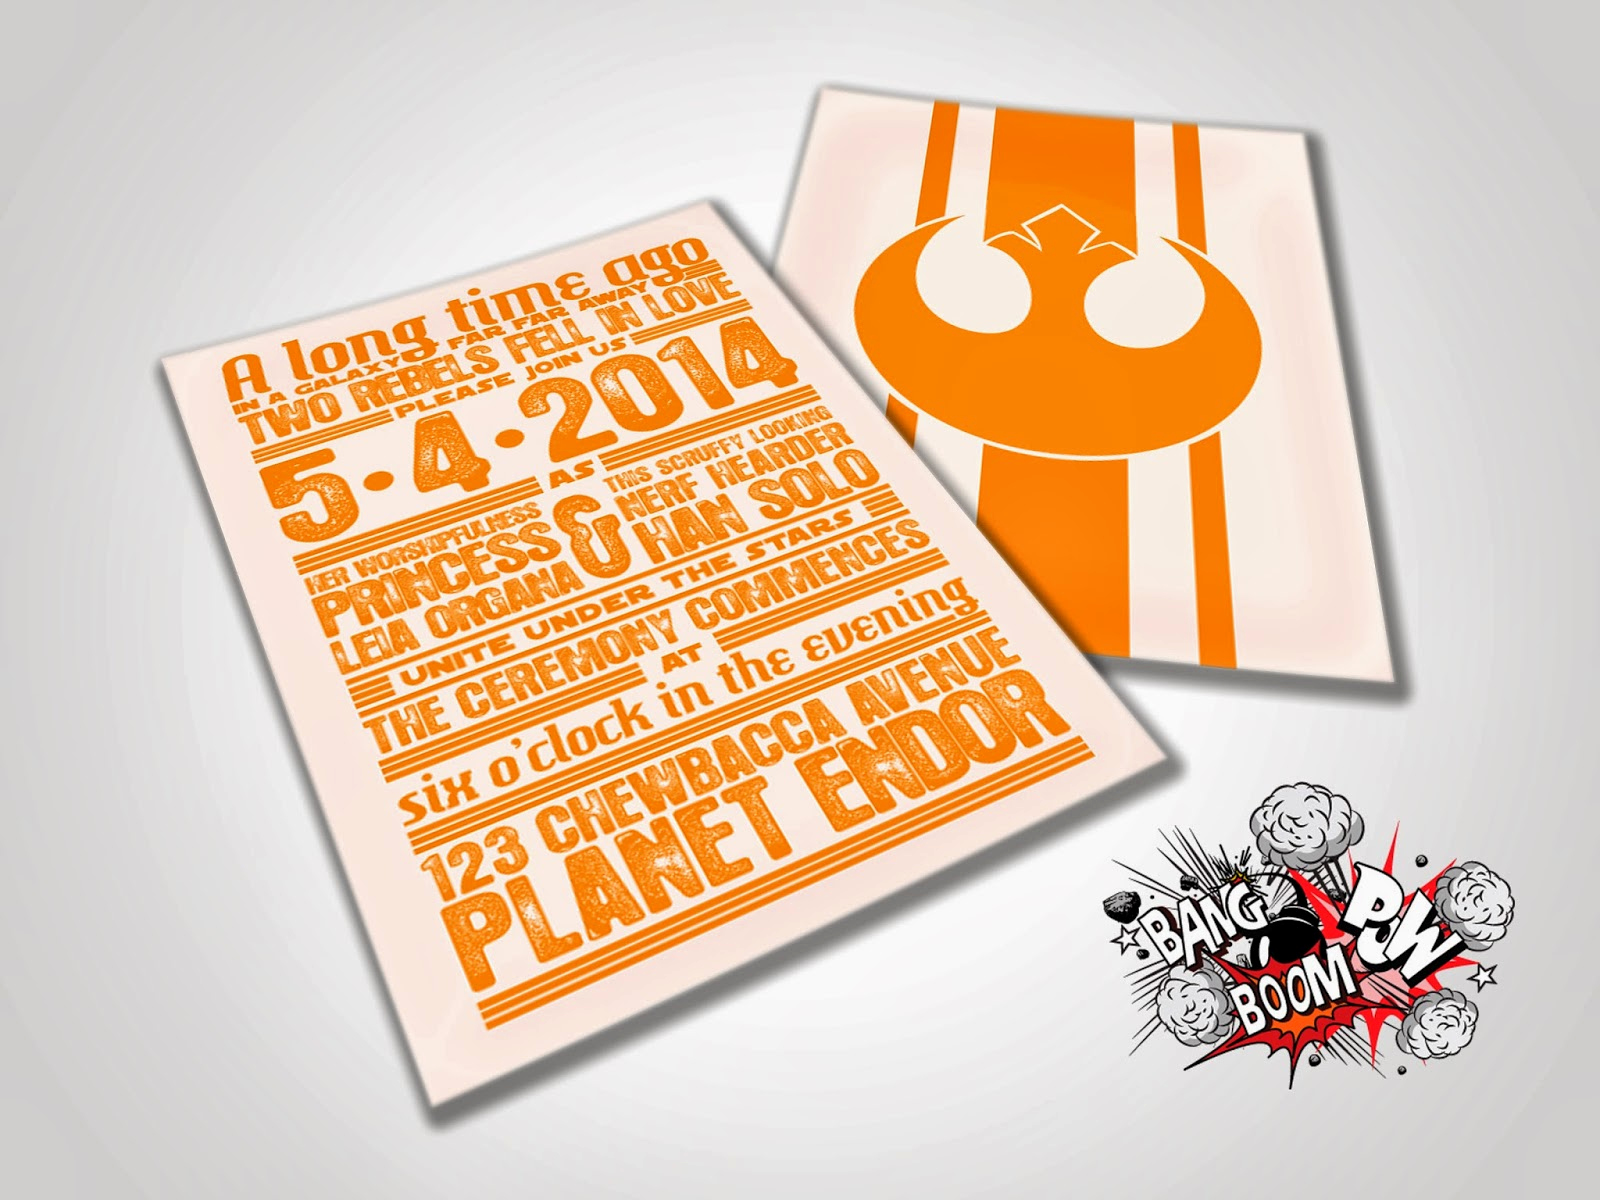 Star Wars Wedding Invitation Inspirational Bang Boom Pow Rebels In Love Star Wars themed Wedding